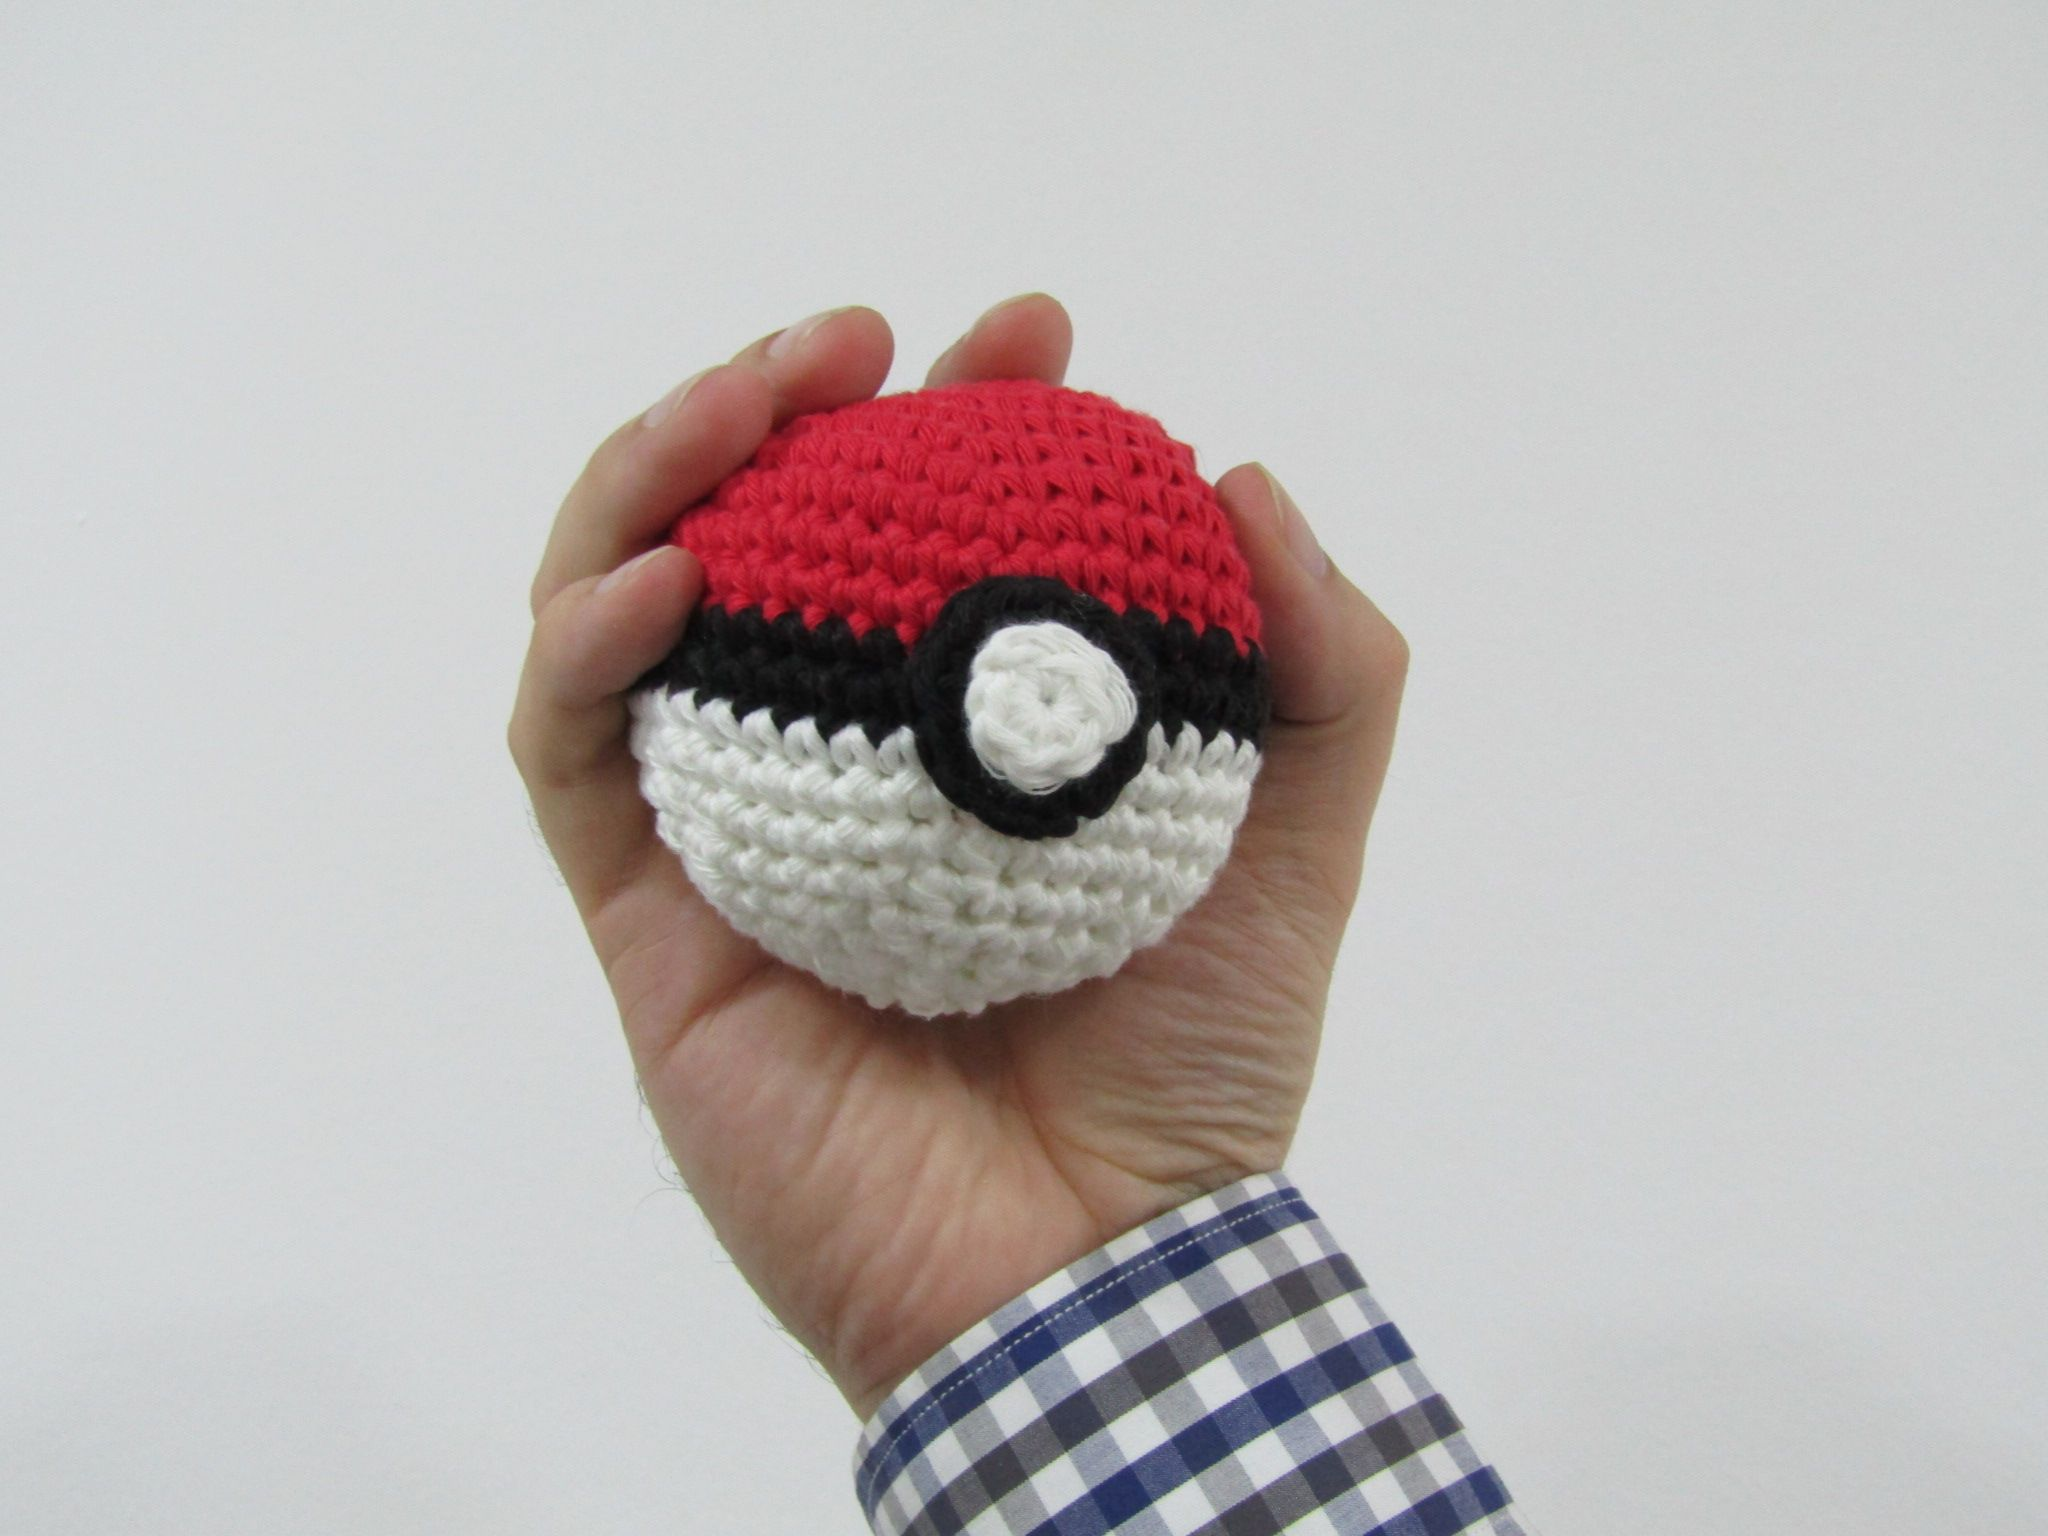 Pokeball Amigurumi miss kits | Knitting TV & movie | Pinterest ...